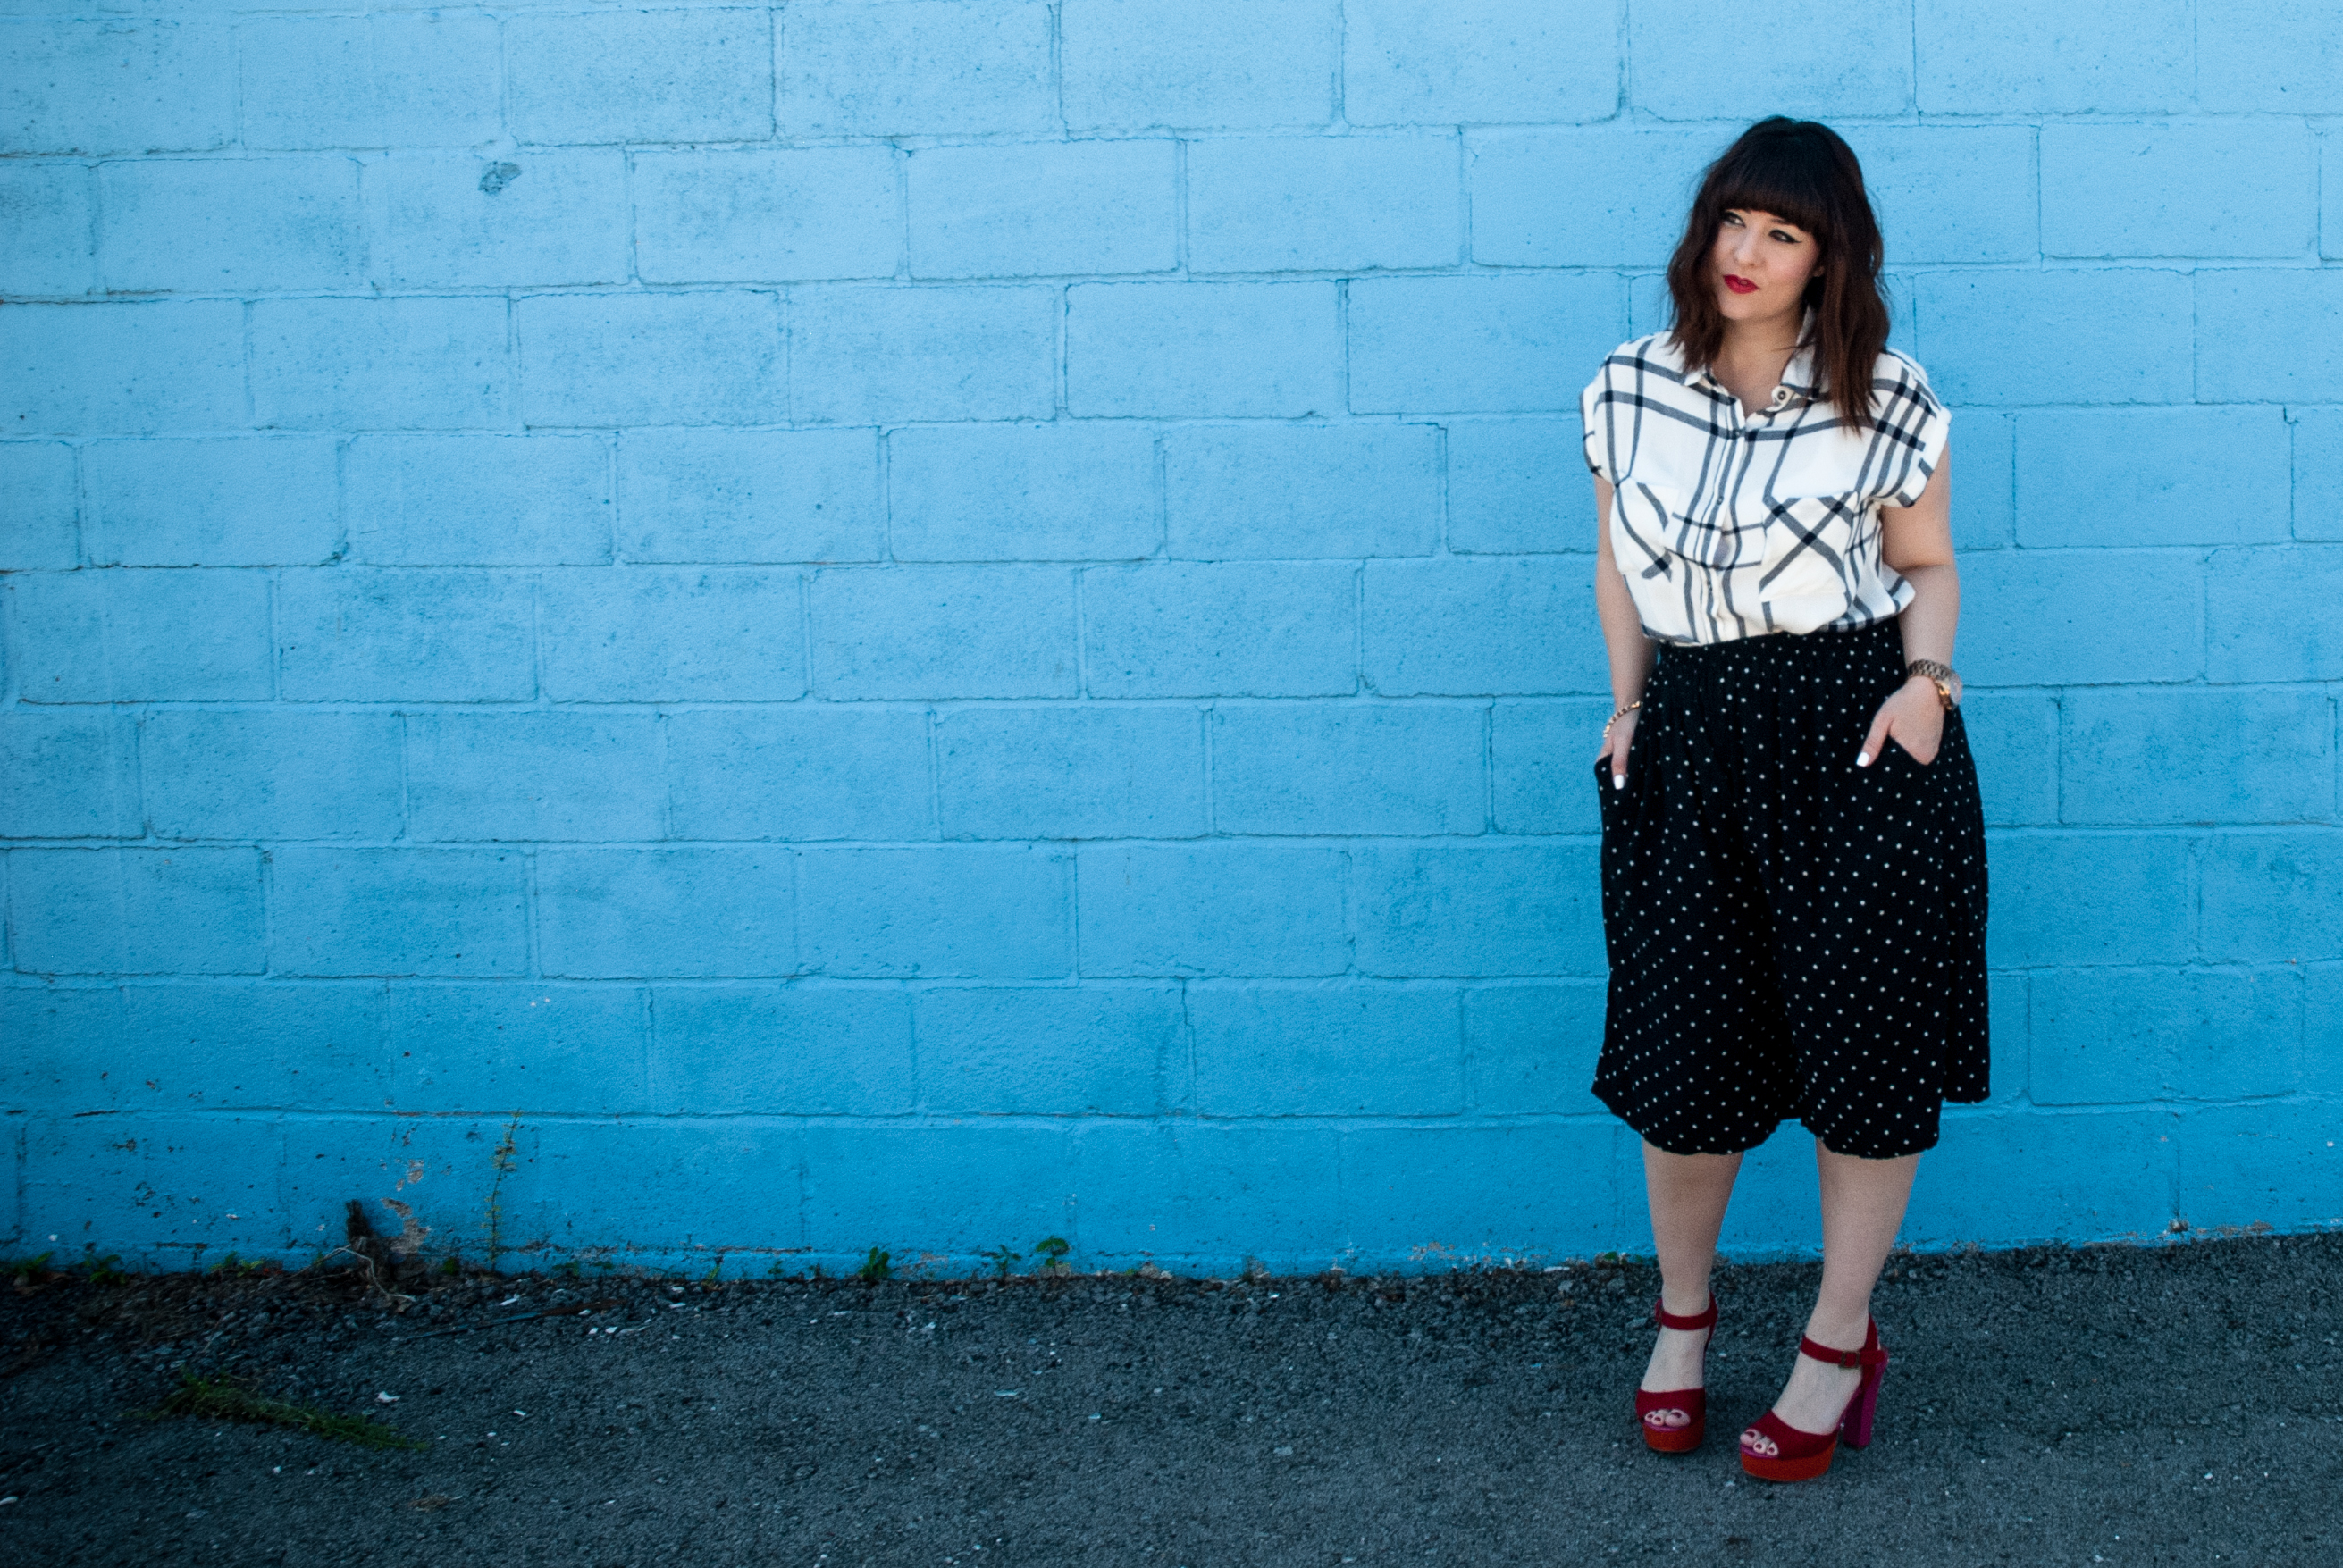 3 Ways to Successfully Rock Mixed Prints // By Rebekah Houle